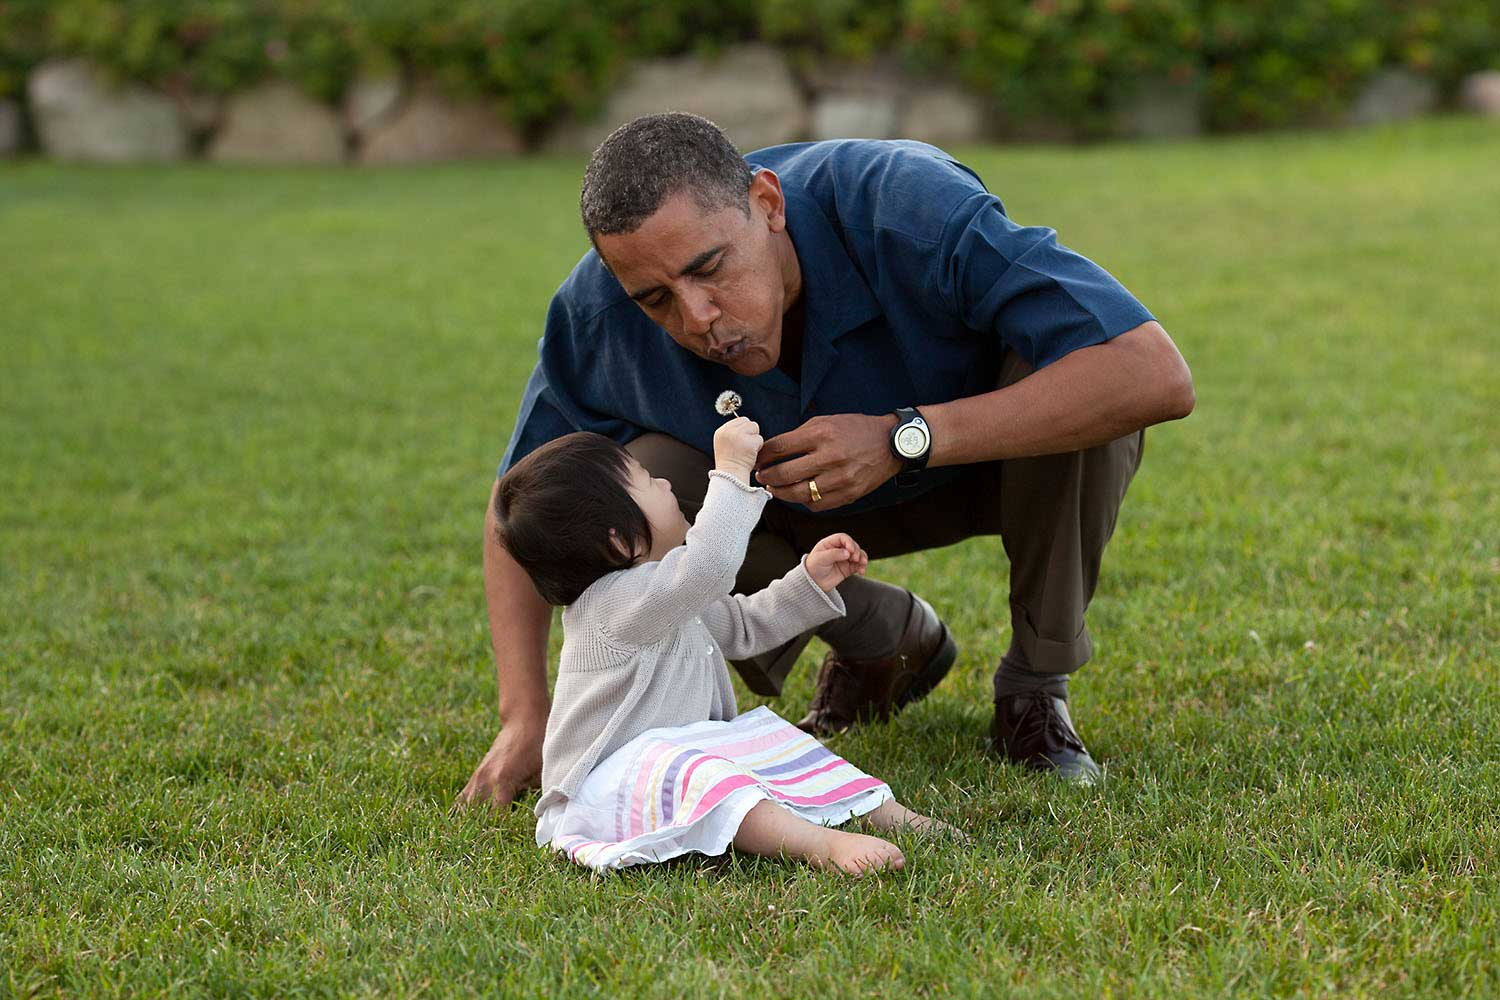 On vacation in Martha's Vineyard, the President shared a moment with his young niece, Savita, Aug. 25, 2009.